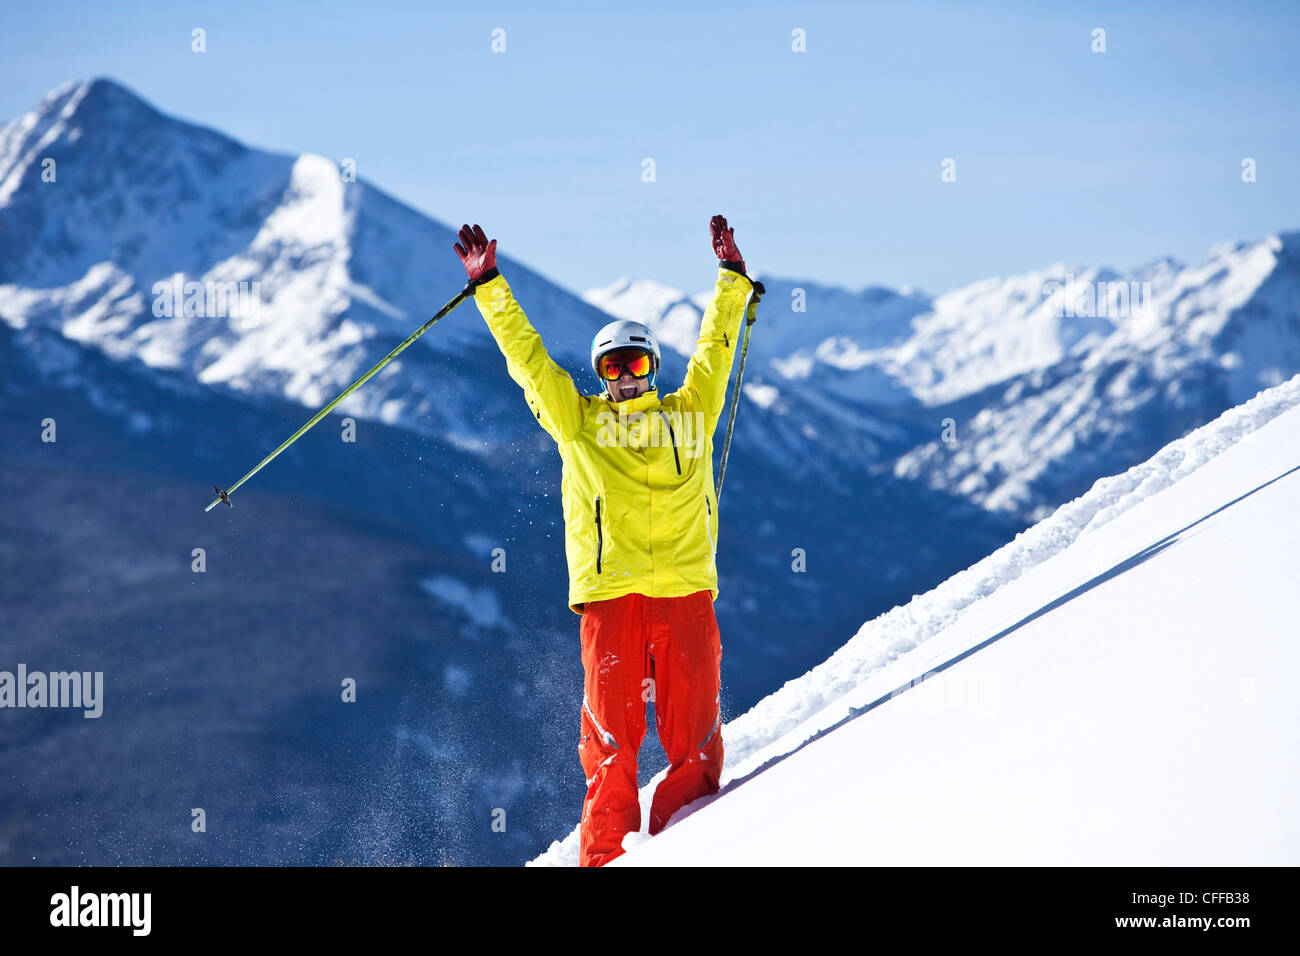 A happy skier smiling raises his arms in celebration of fresh snow with huge mountains behind him in Colorado. Stock Photo